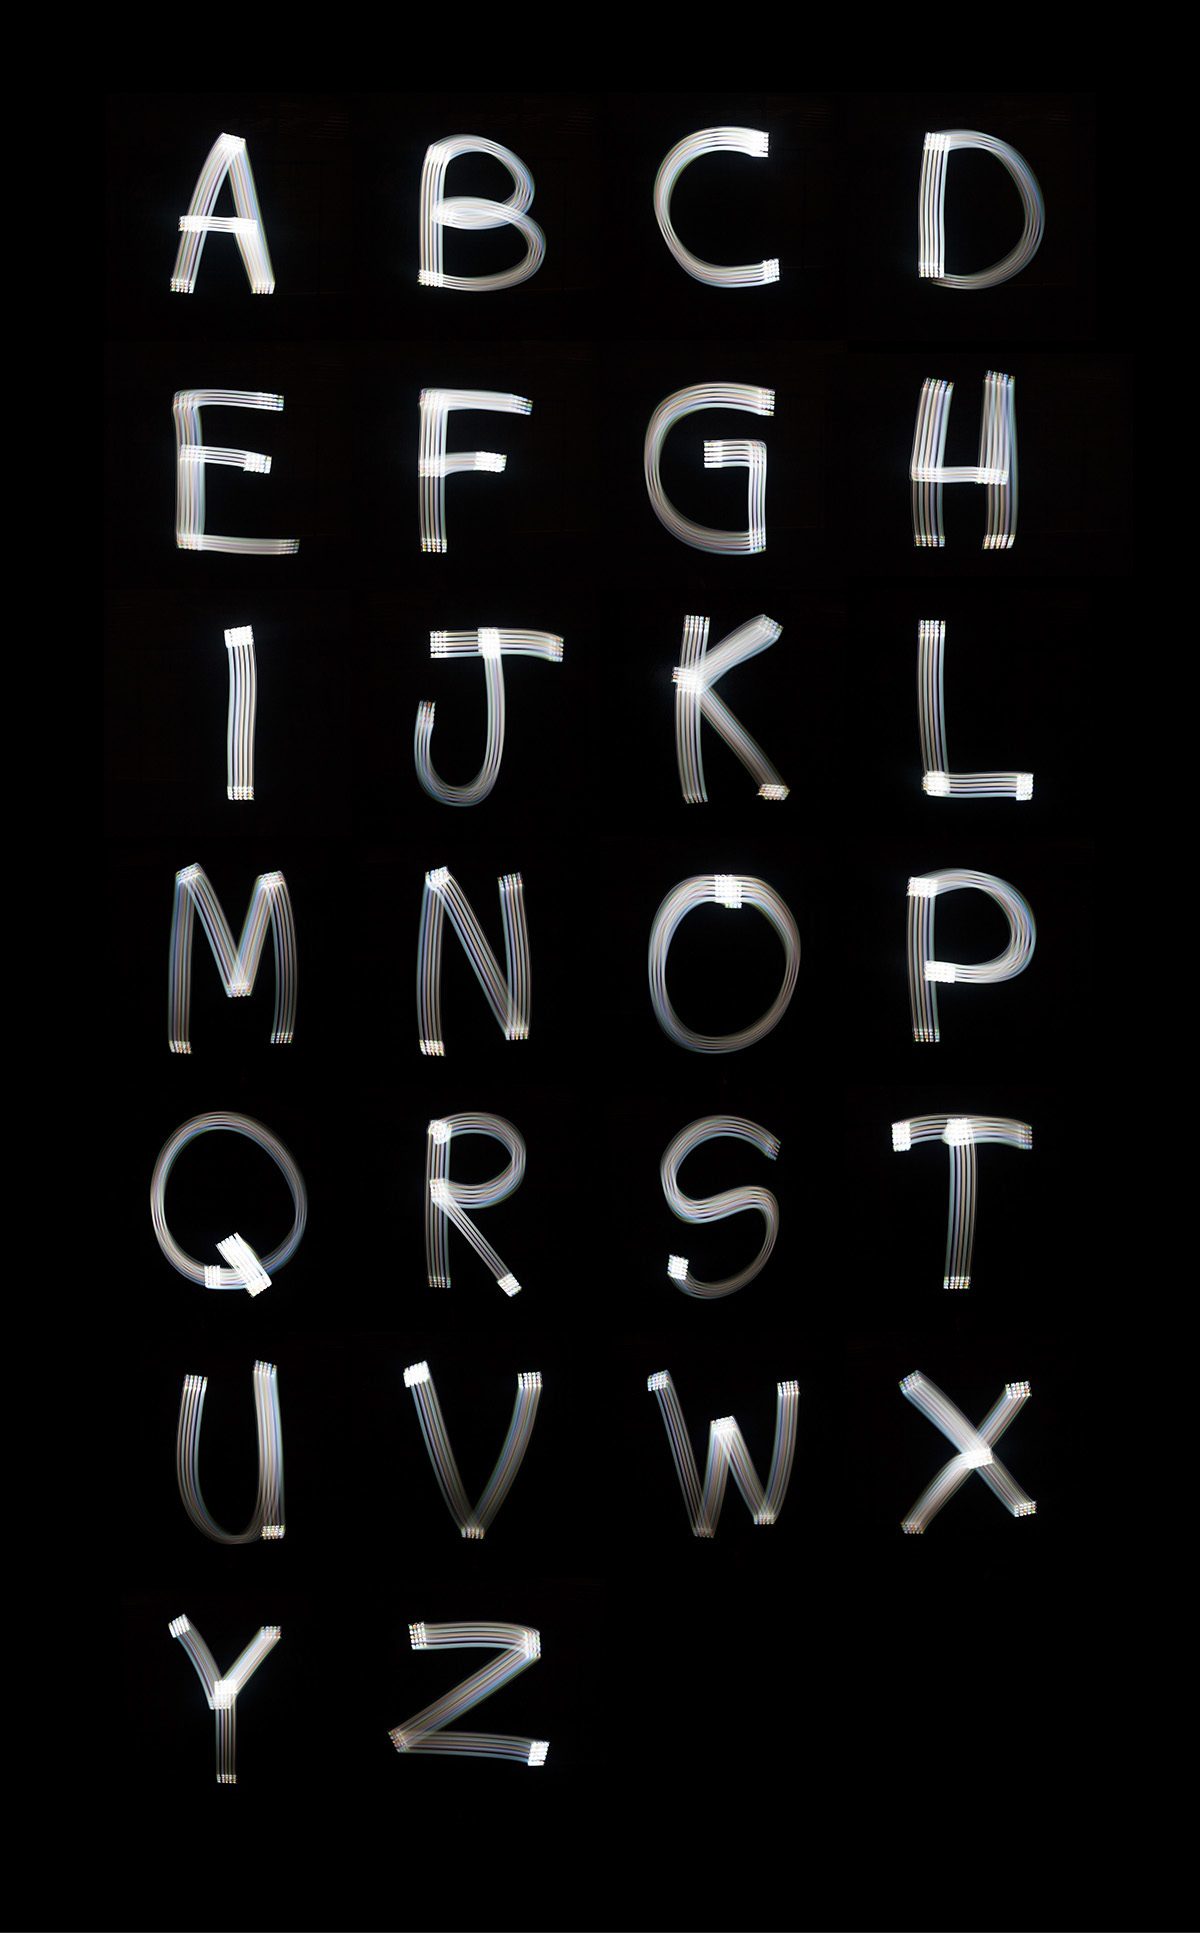 Free font created with light on Behance